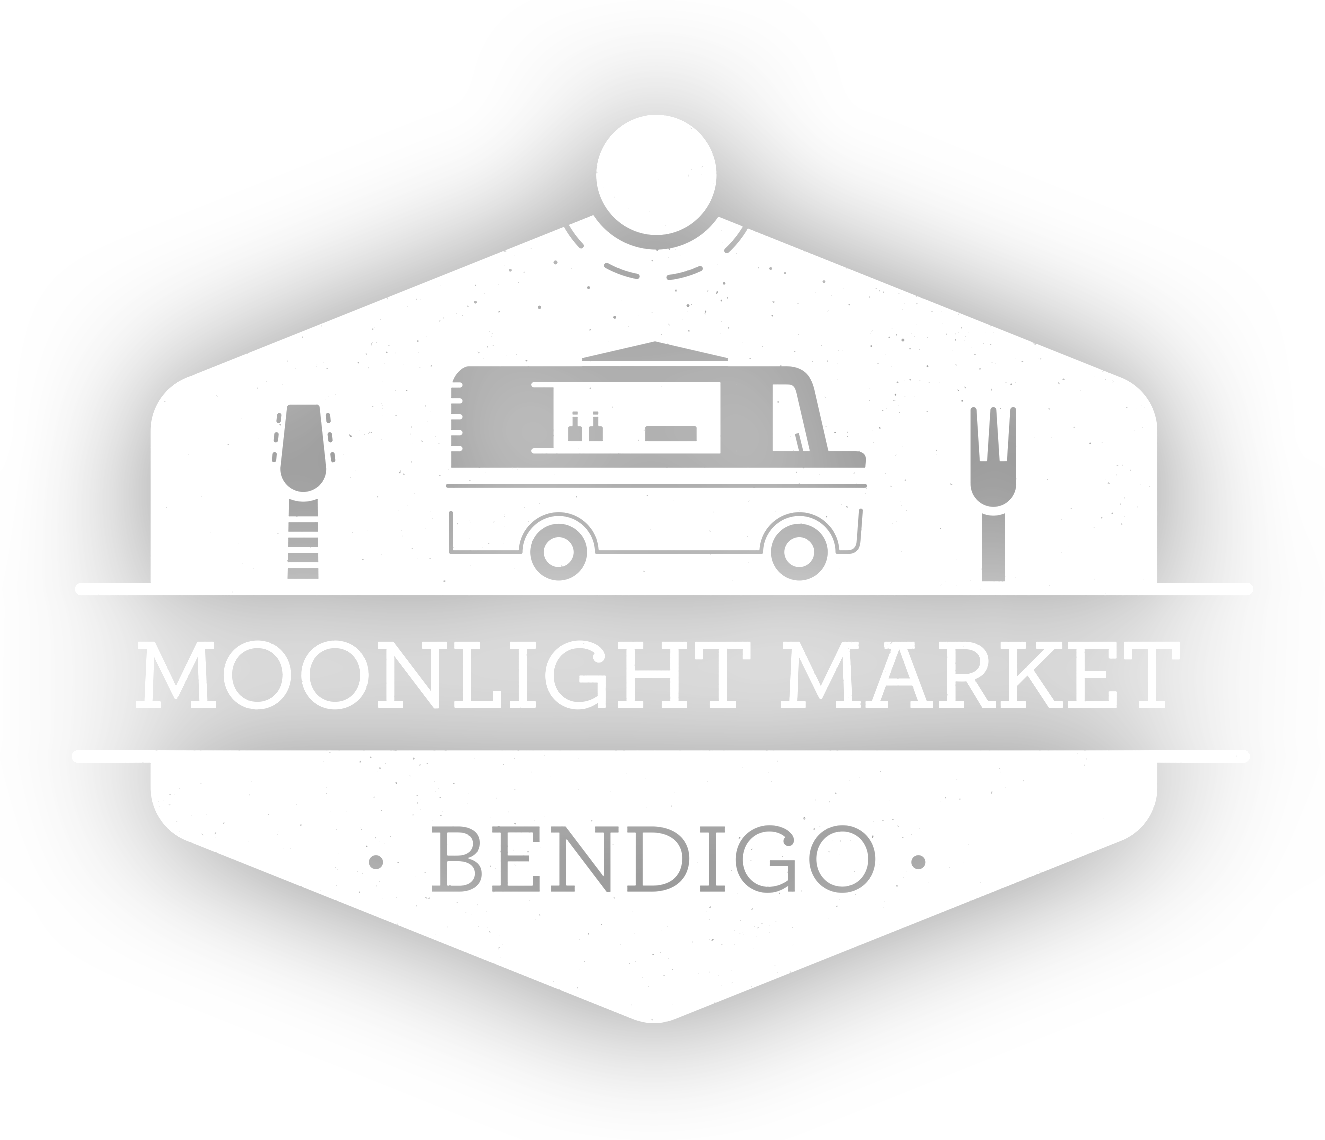 Moonlight Market